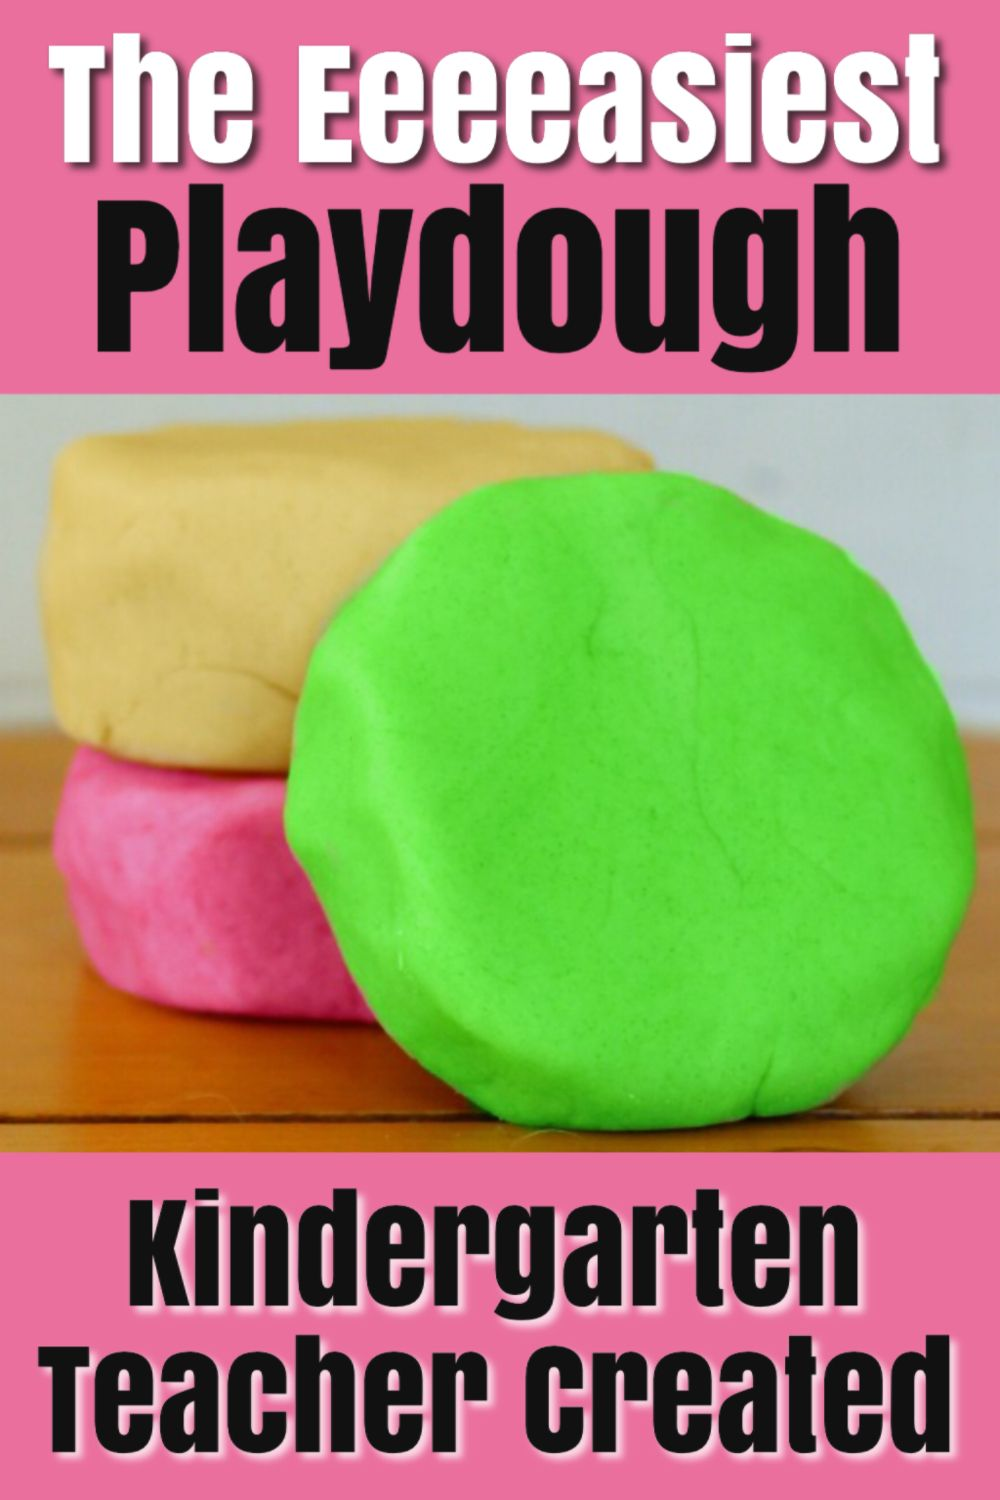 This is the BEST PLAYDOUGH RECIPE there is! Easy